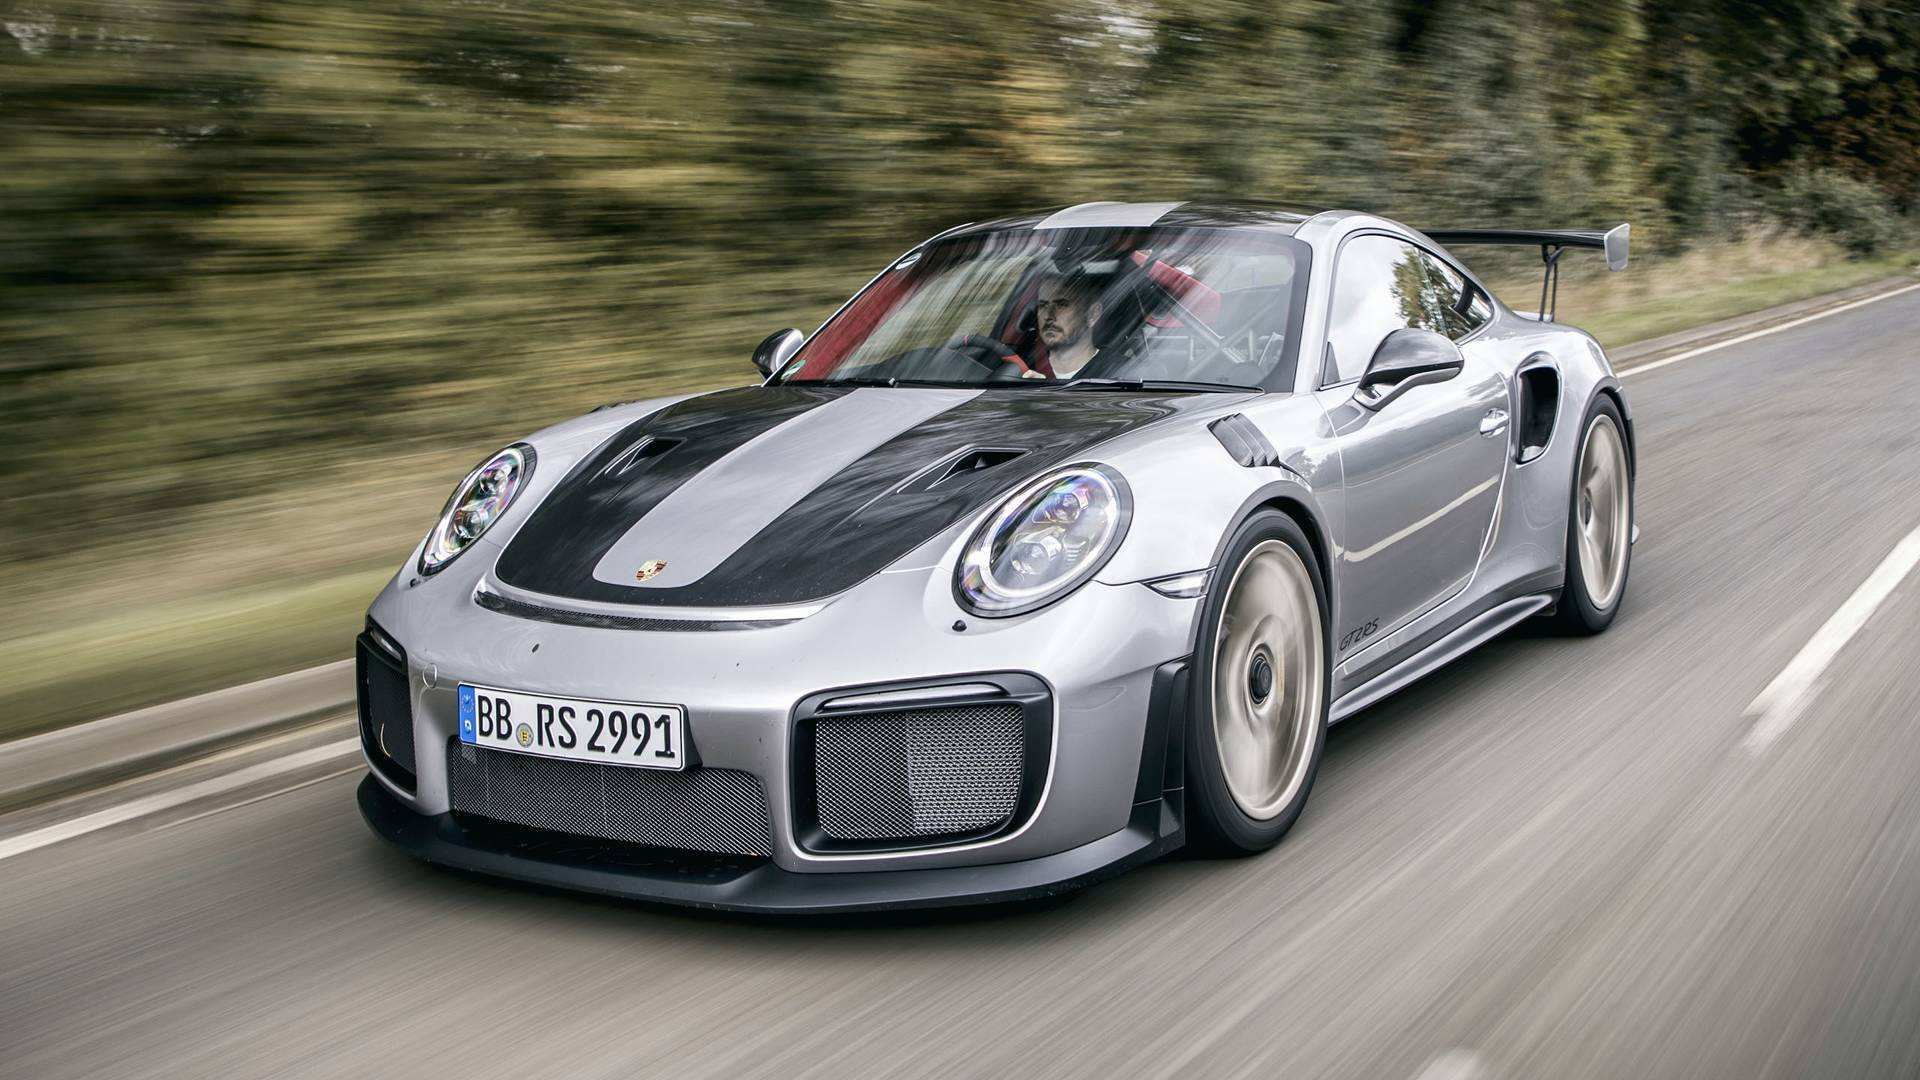 58 Great 2019 Porsche Gt2 Rs Pricing for 2019 Porsche Gt2 Rs